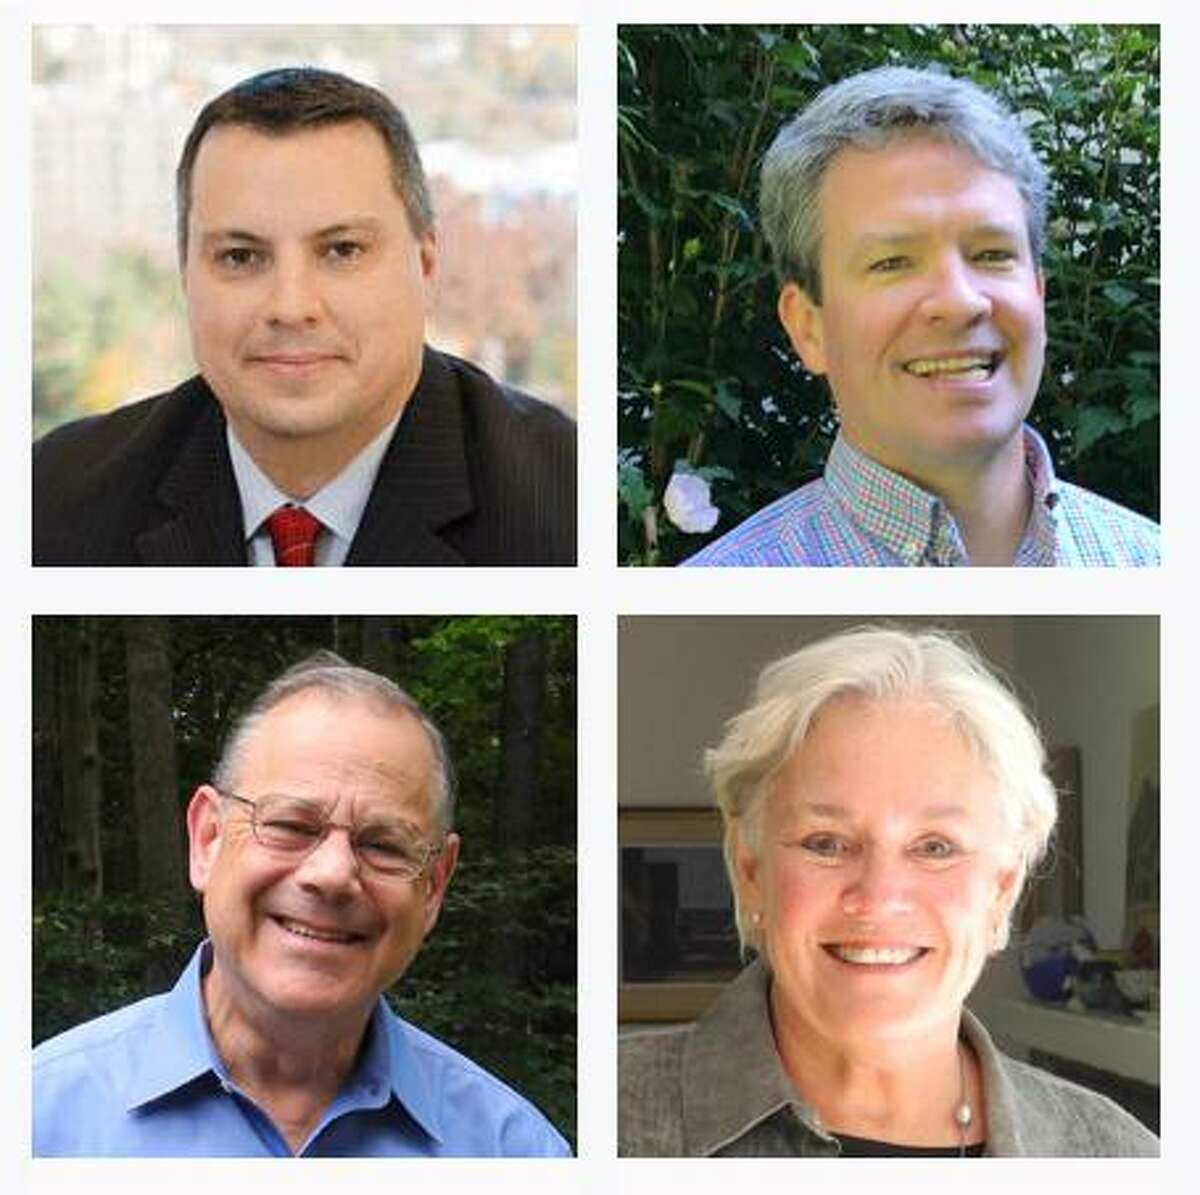 The candidates running for Wilton Board of Selectmen are, clockwise from top left, Republican Joshua Cole, Unaffiliated David Clune, Democrat Ceci Maher and Democrat Ross Tartell. Joshua Cole